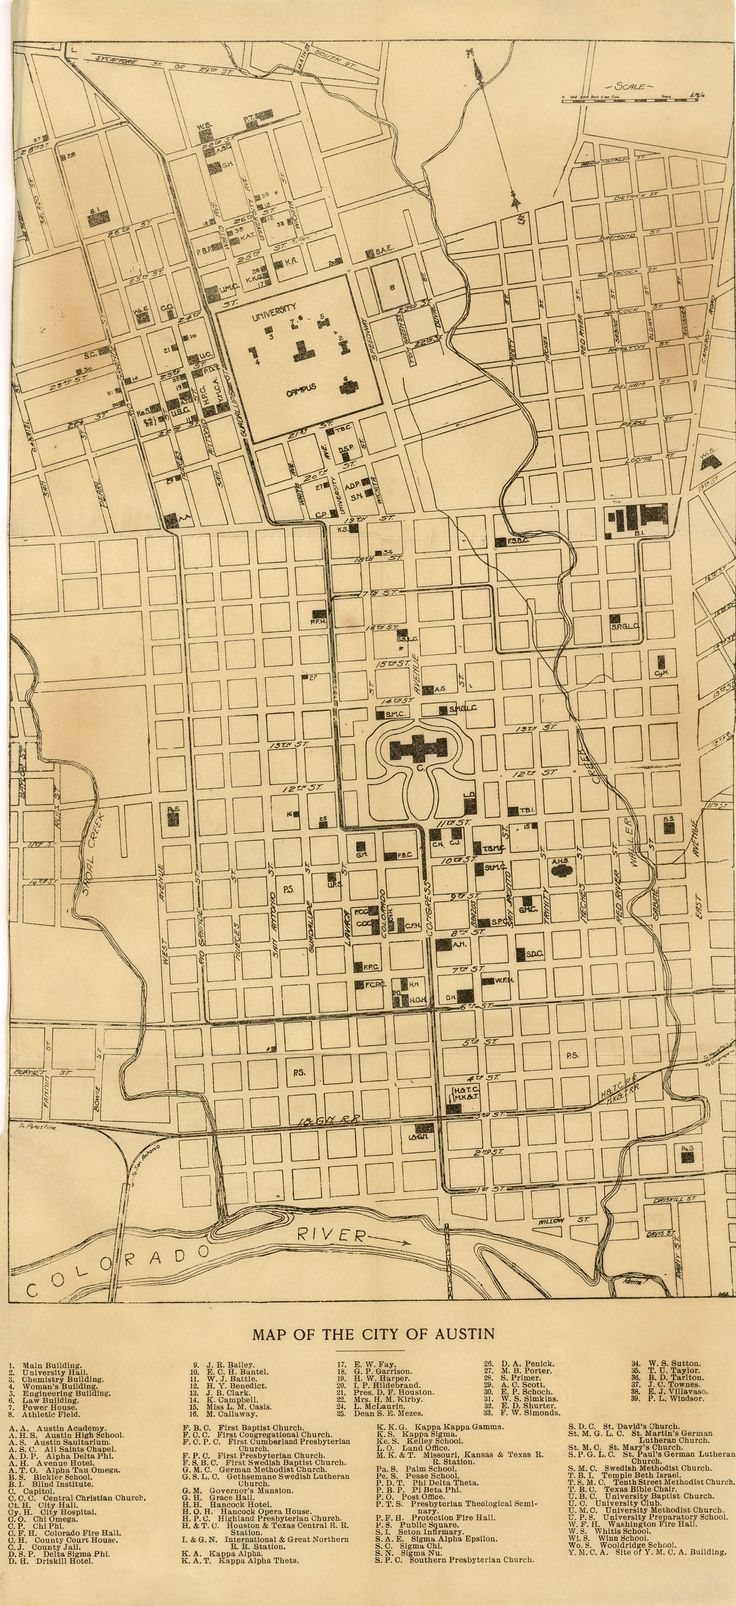 Ever wonder what UT has looked like in the past? PCL's online Map Collection has digital maps of the UT campus from 1900! (http://www.lib.utexas.edu/maps/ut_austin_historical_maps.html)